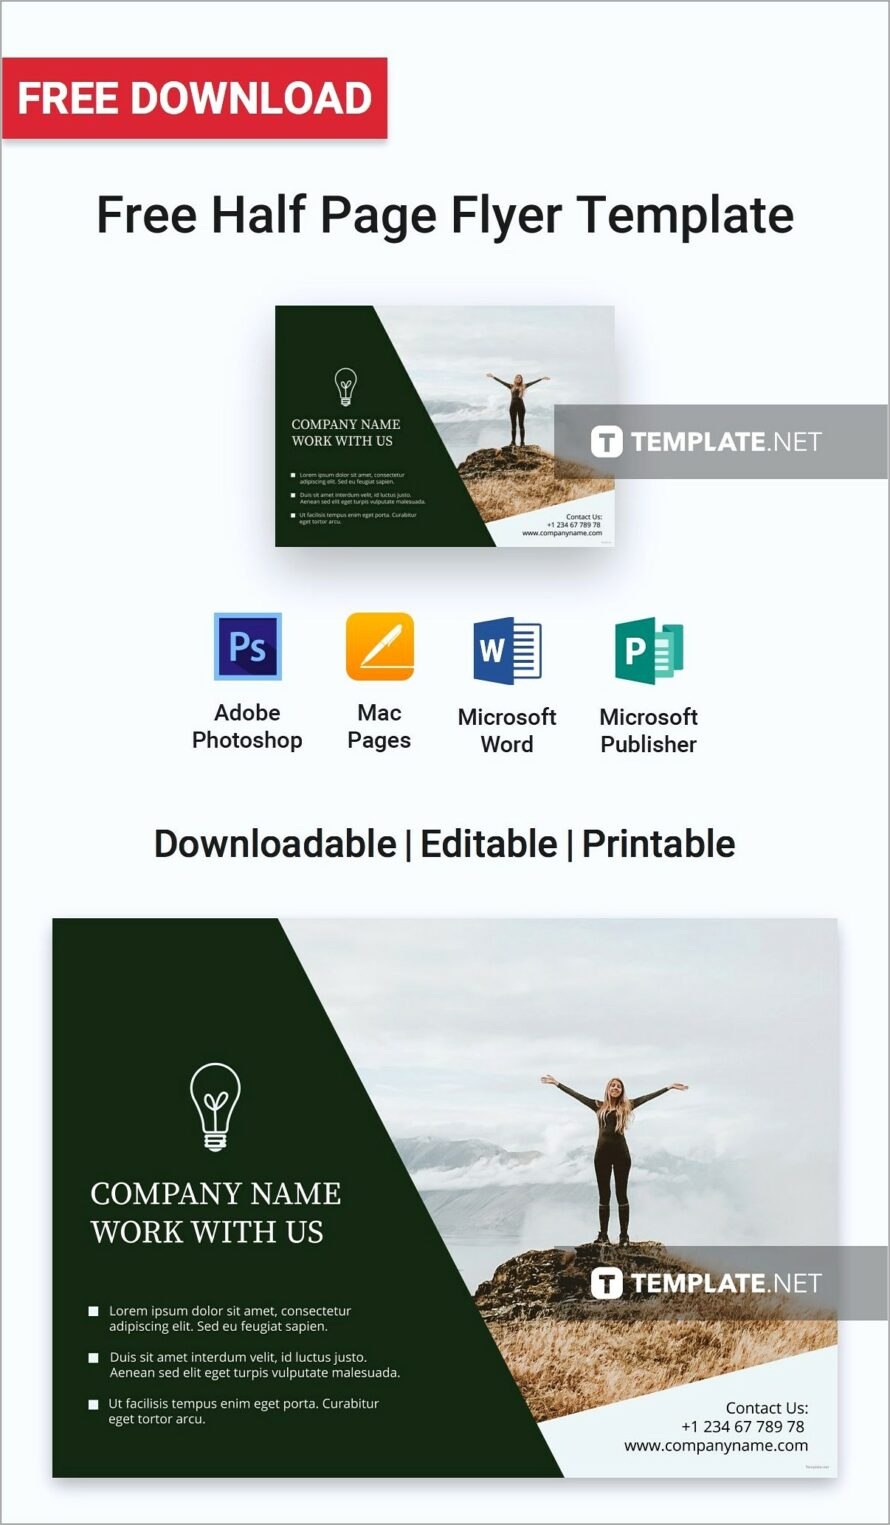 Half Page Flyer Template Indesign